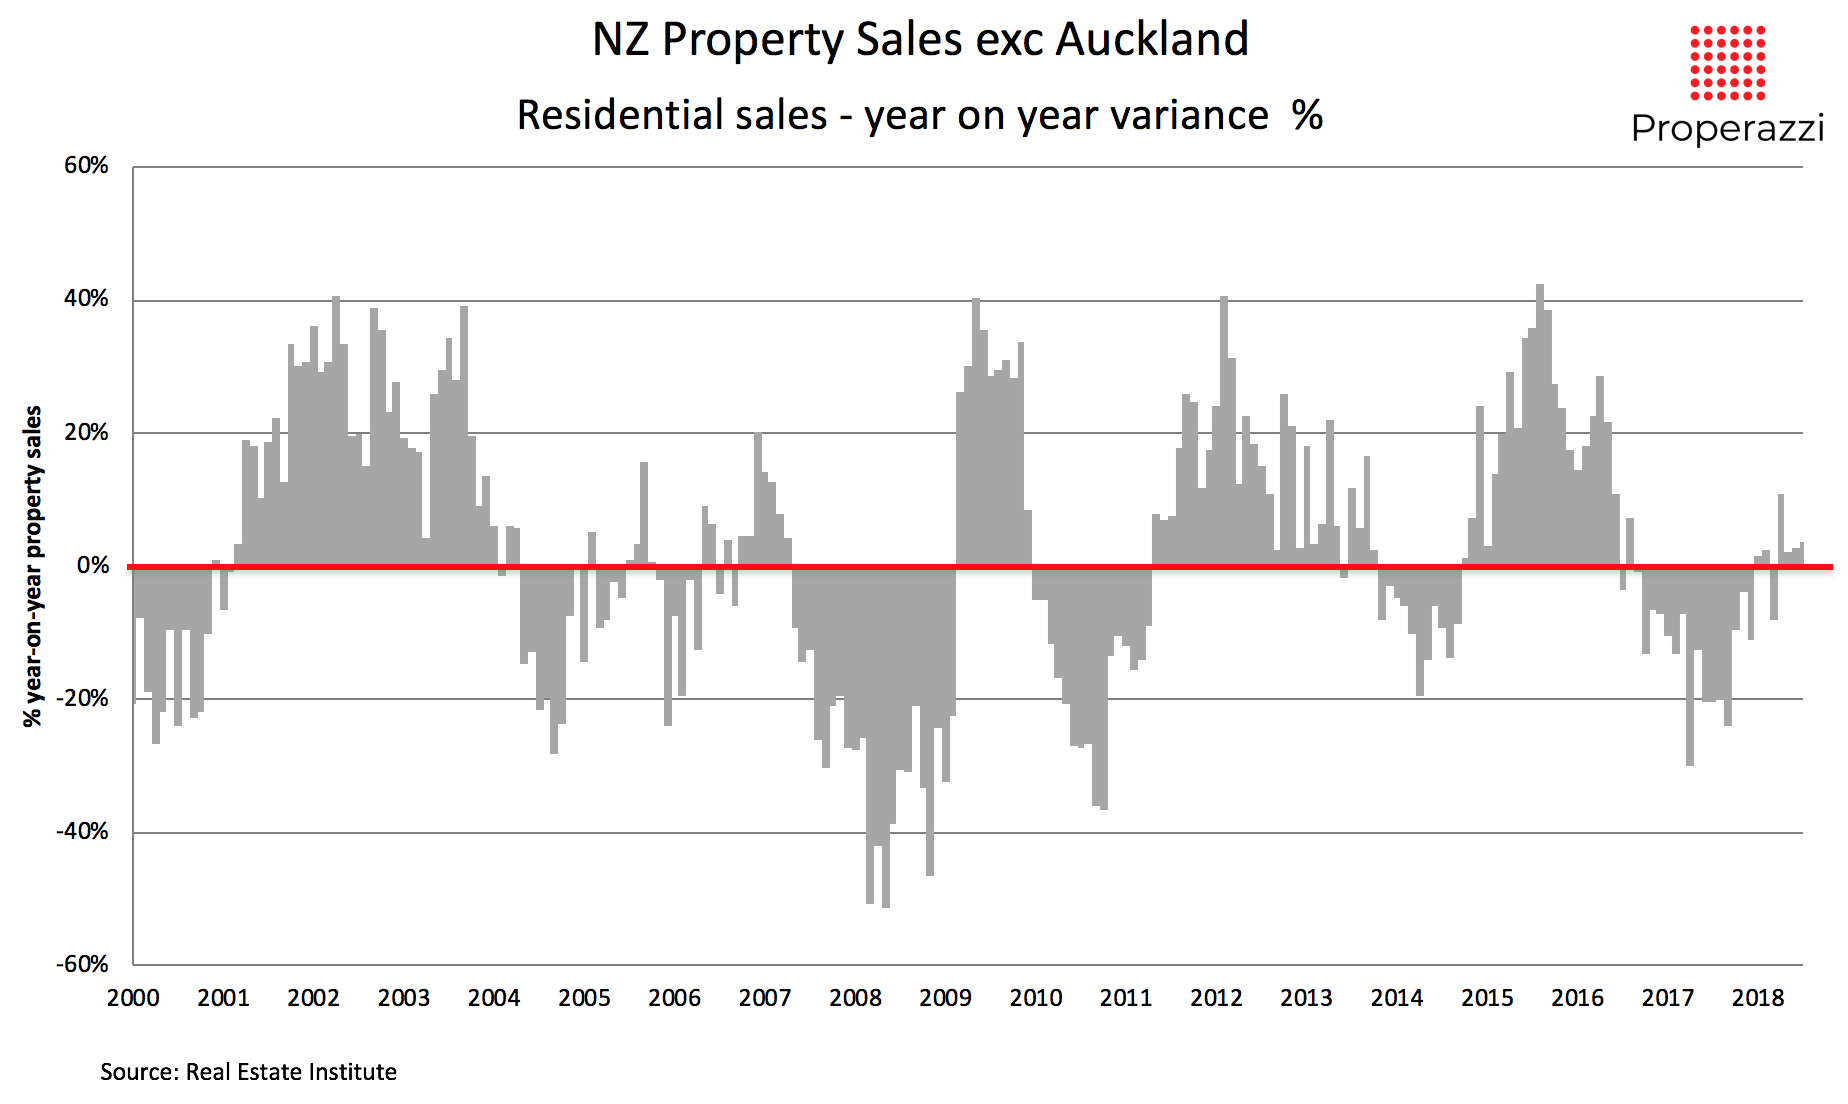 Property sales for NZ exc Auckland 2000 to Jul 2018 variance yr on yr